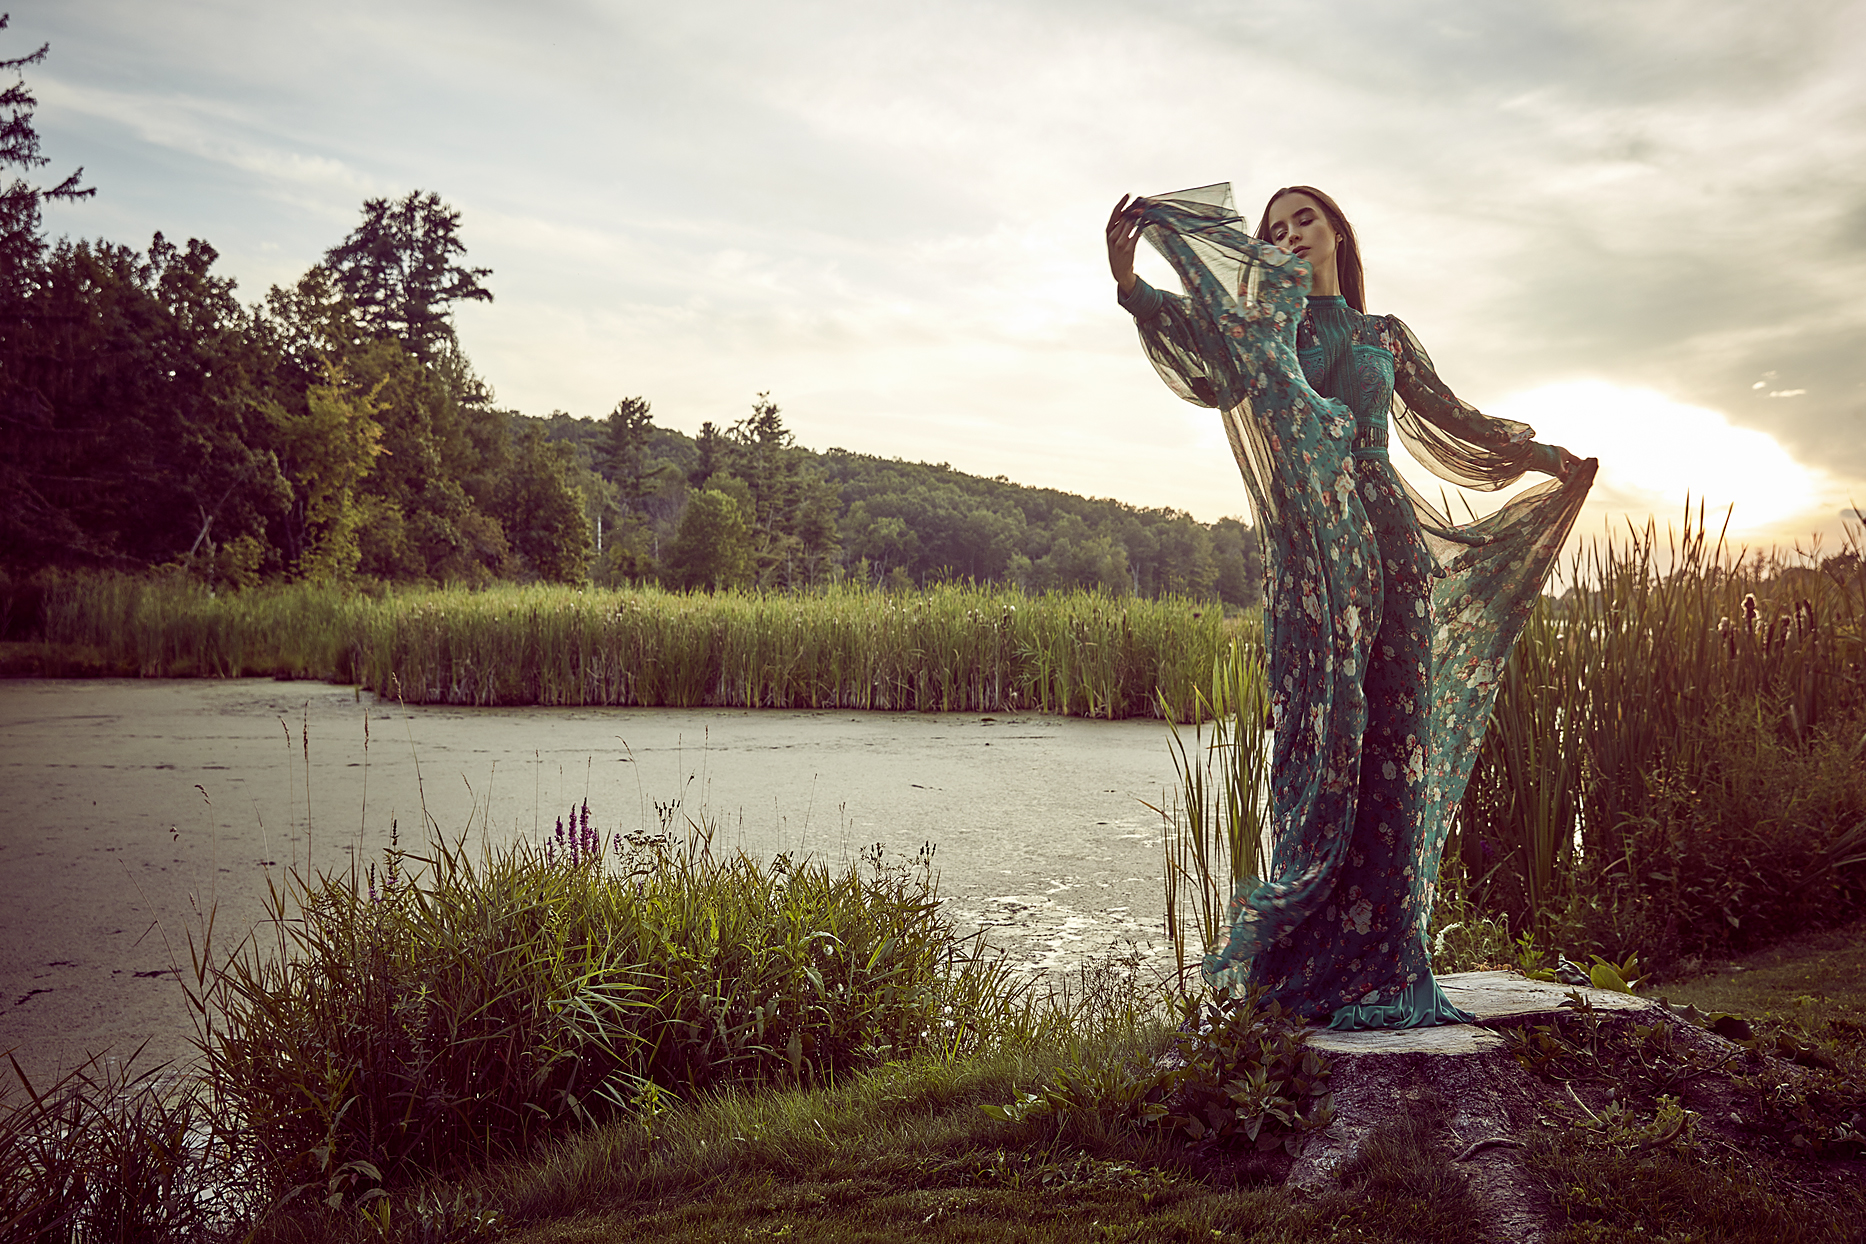 Woman waving elegant teal blue dress in front of marsh with high grass in background - Mark DeLong: Fashion Gallery